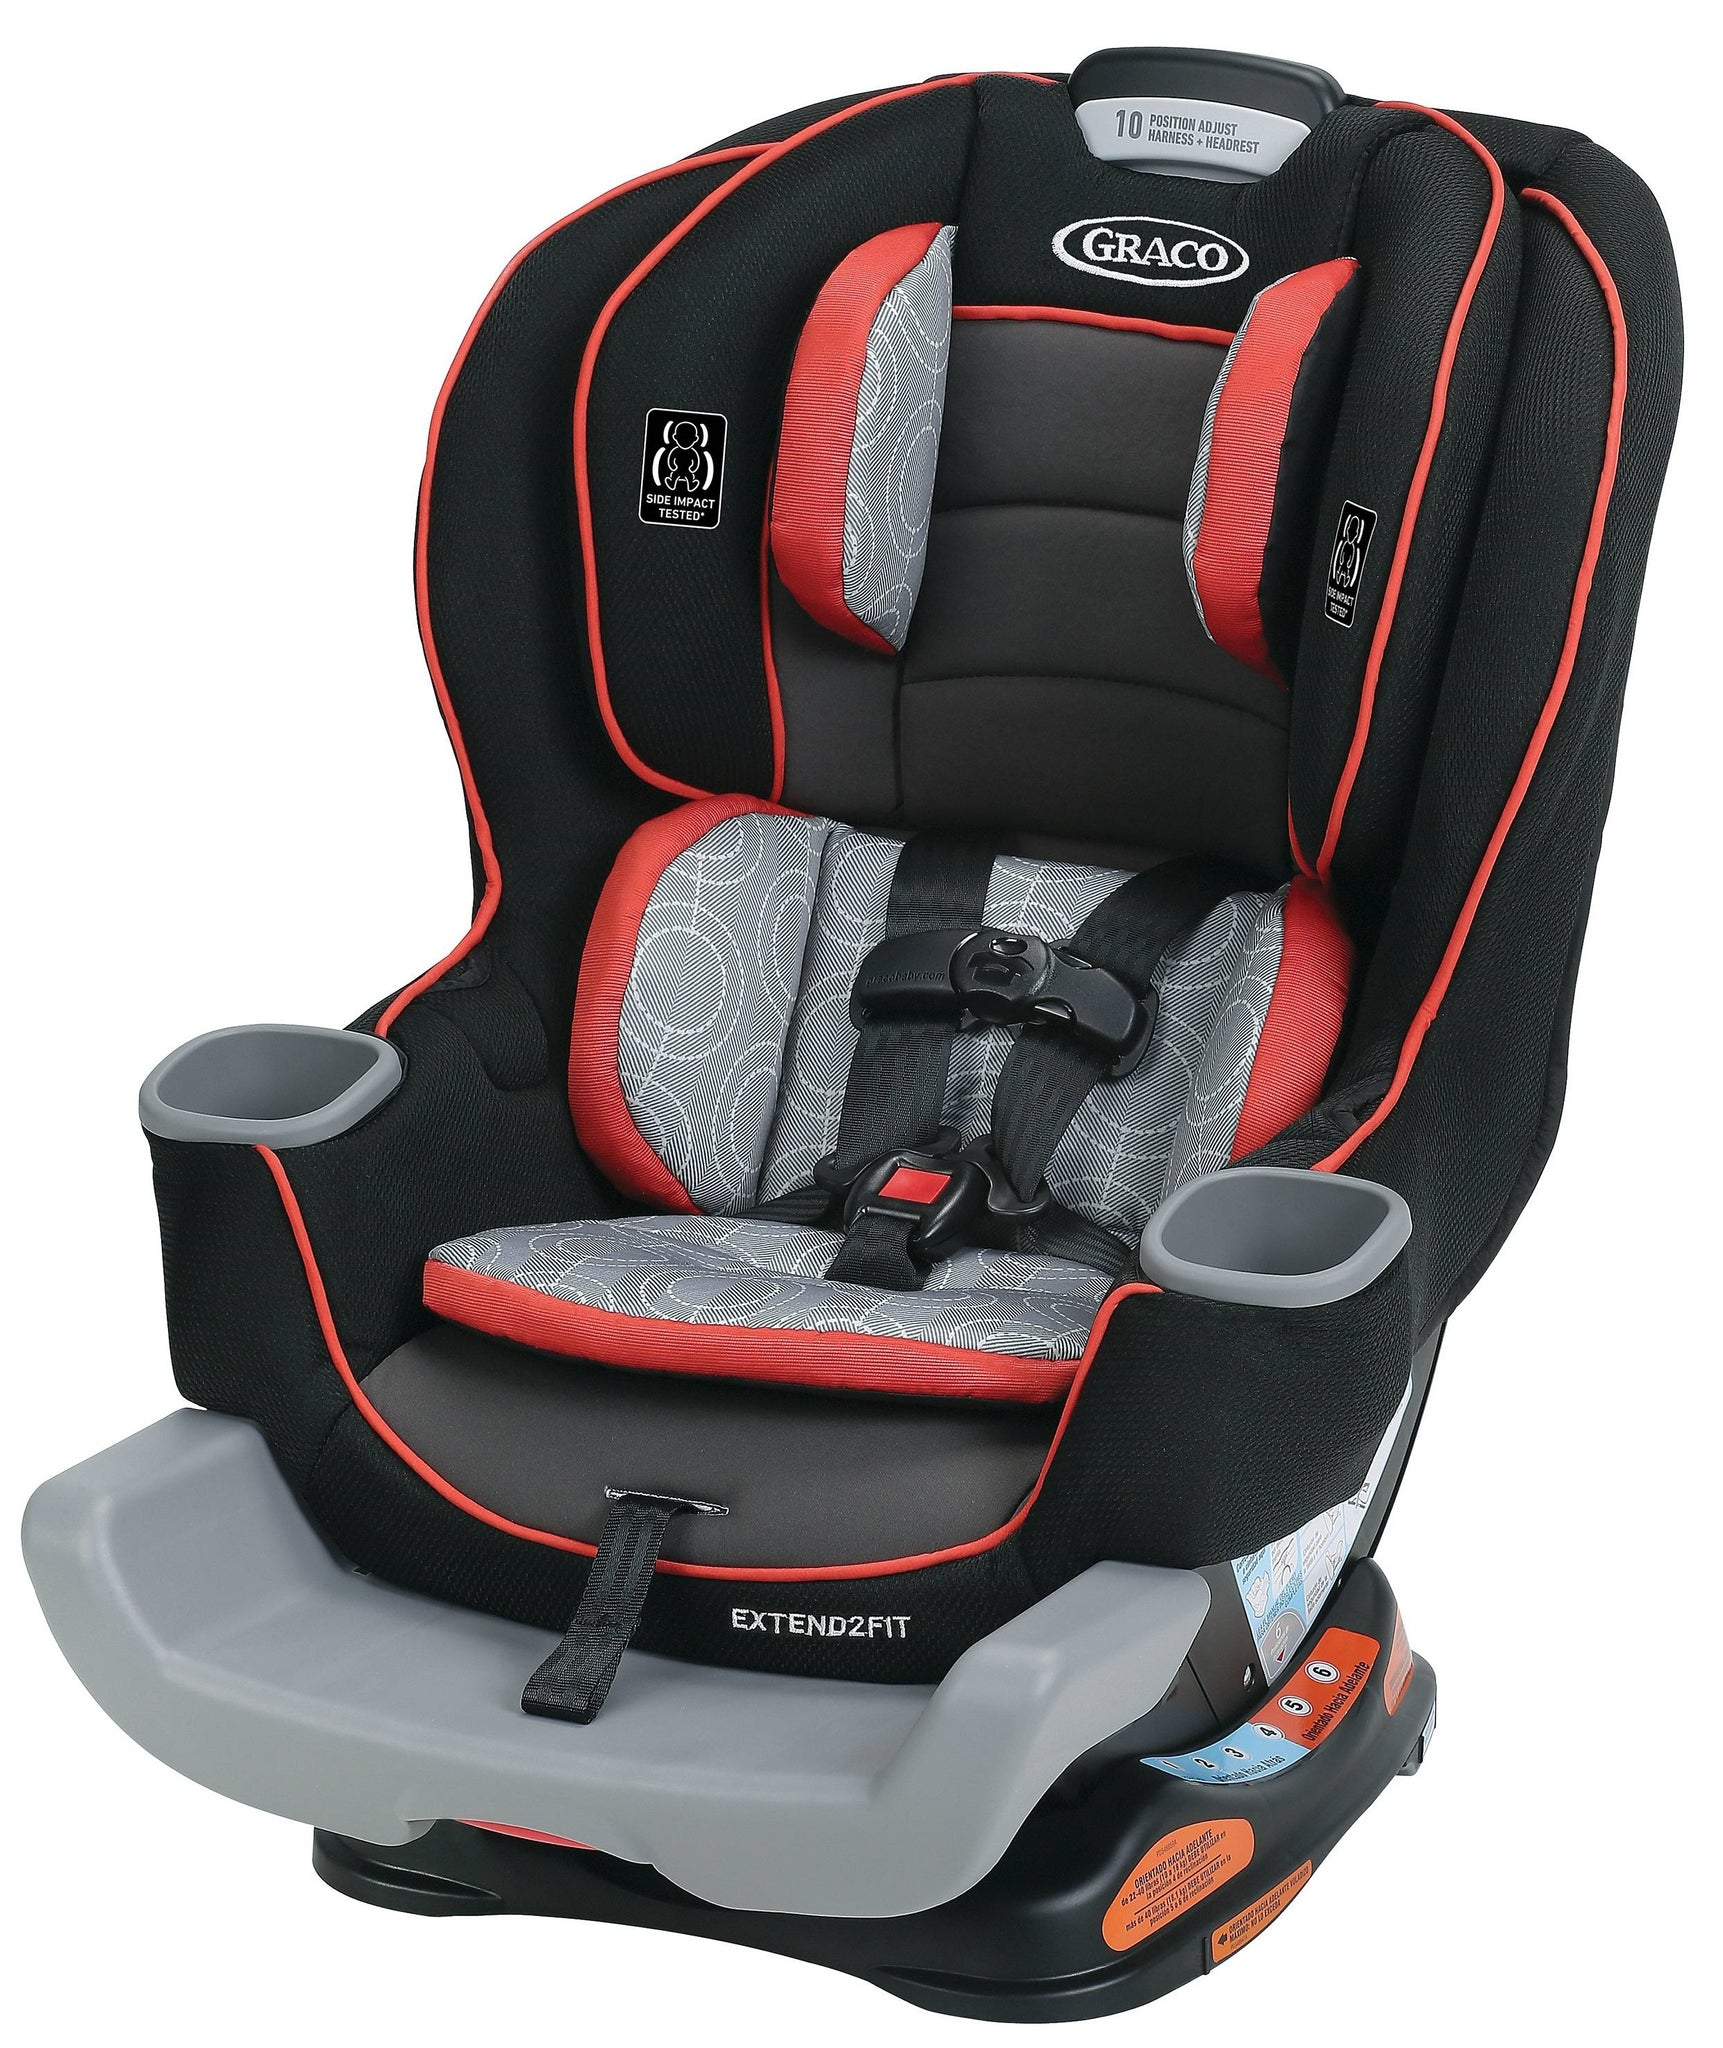 Buy Graco Extend2Fit Convertible Car Seat (Solar) Online ...